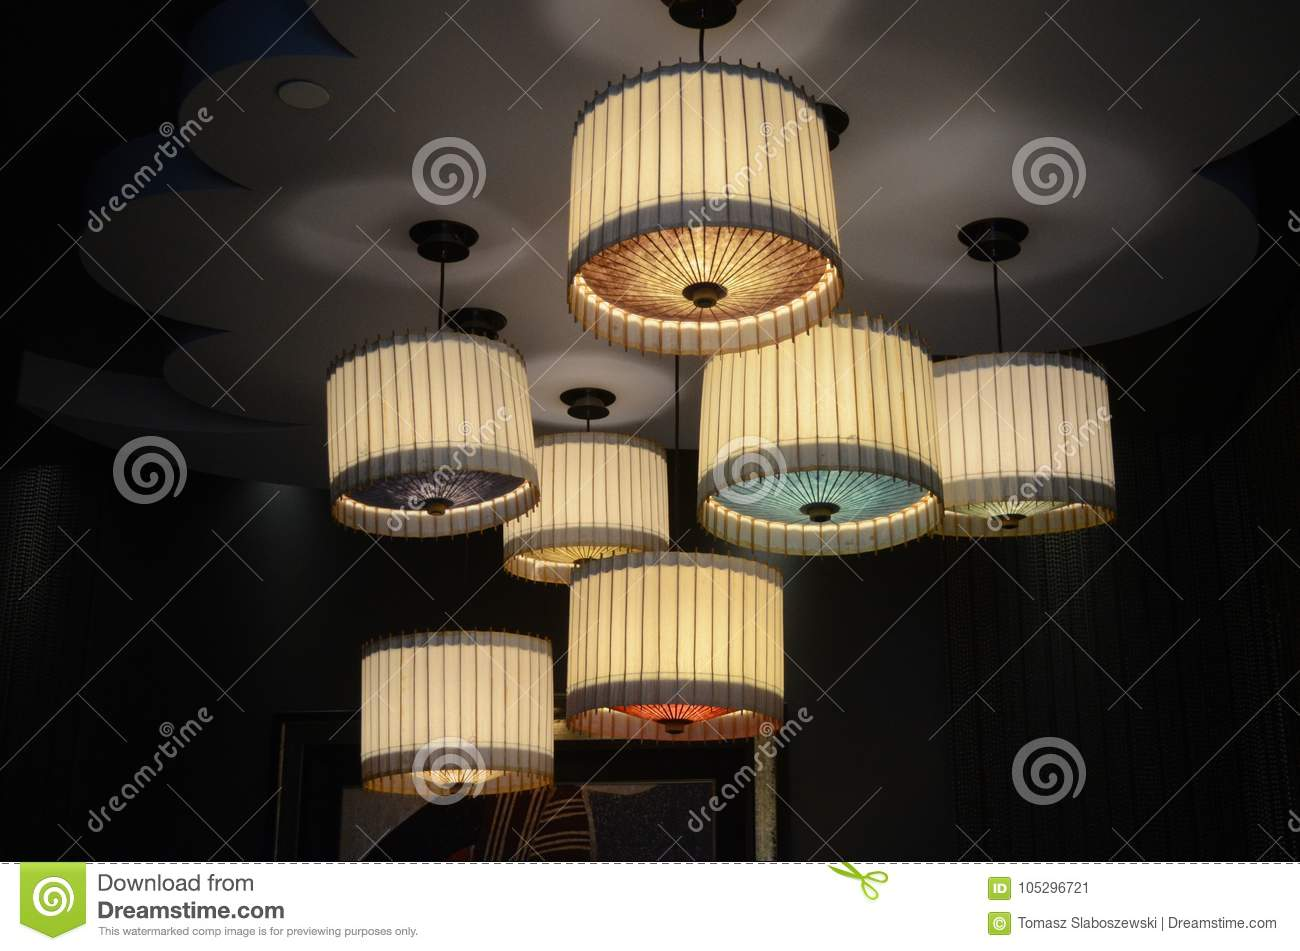 1 444 Sushi Restaurant Interior Photos Free Royalty Free Stock Photos From Dreamstime